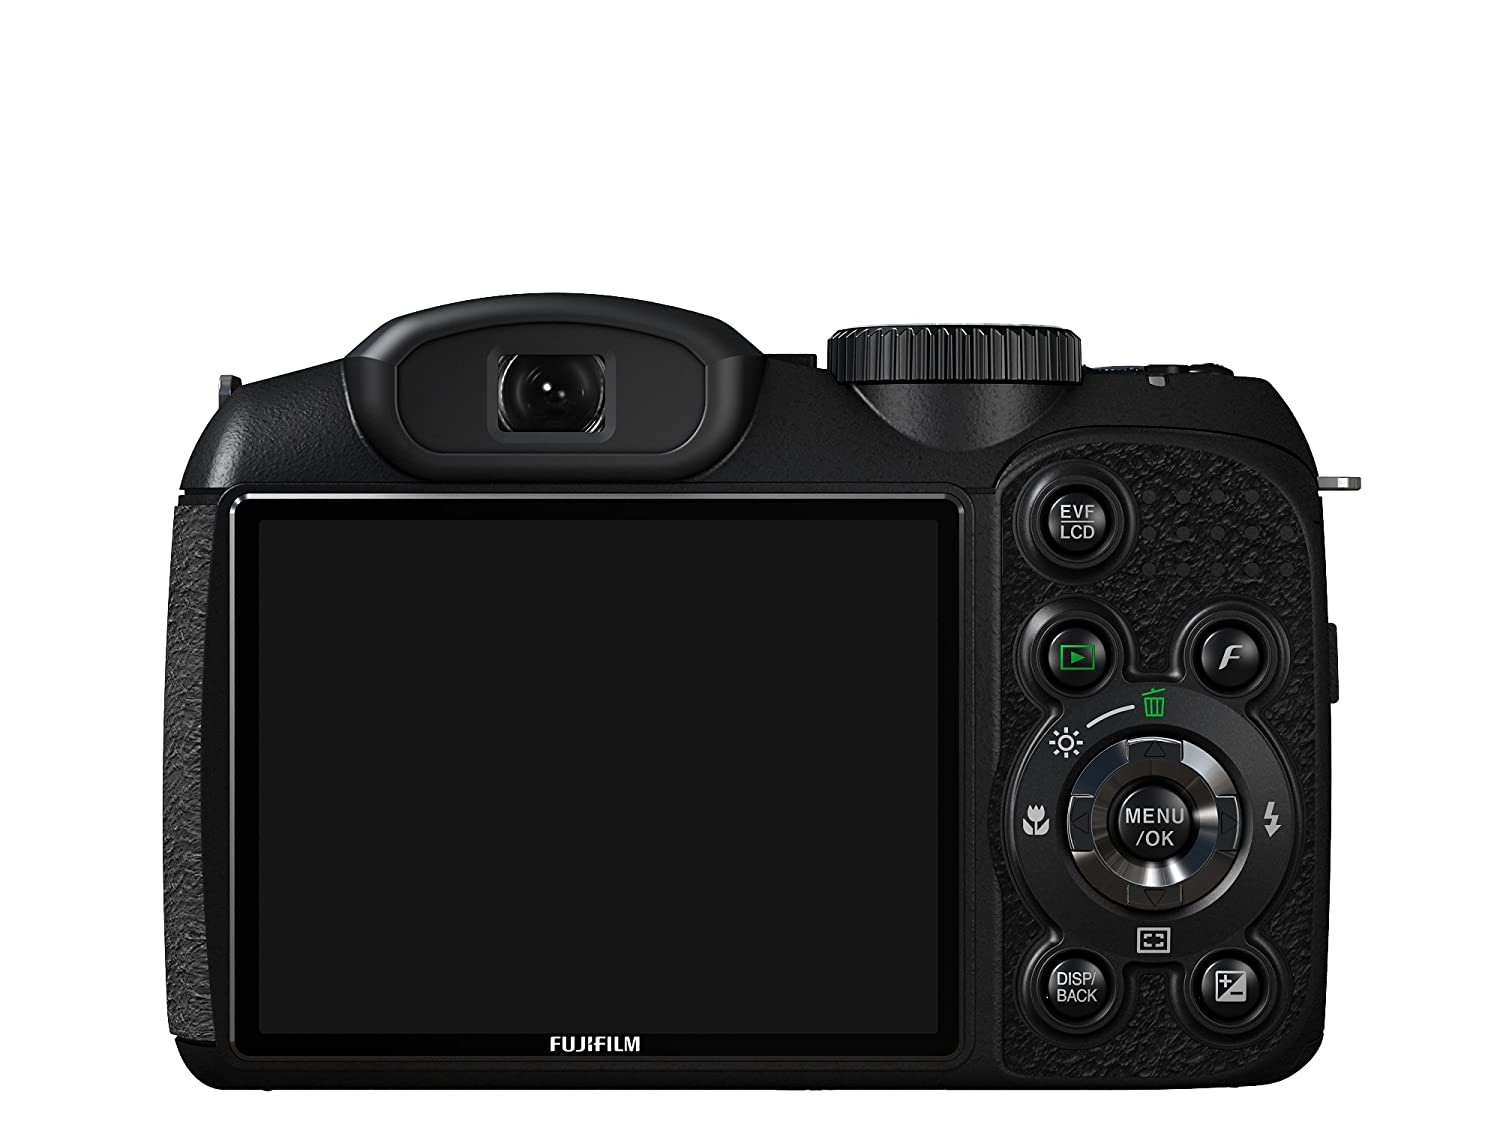 Amazon.com : Fujifilm FinePix S1800 12.2 MP Digital Camera with 18x Wide  Angle Optical Dual Image Stabilized Zoom and 3-Inch LCD : Point And Shoot  Digital ...